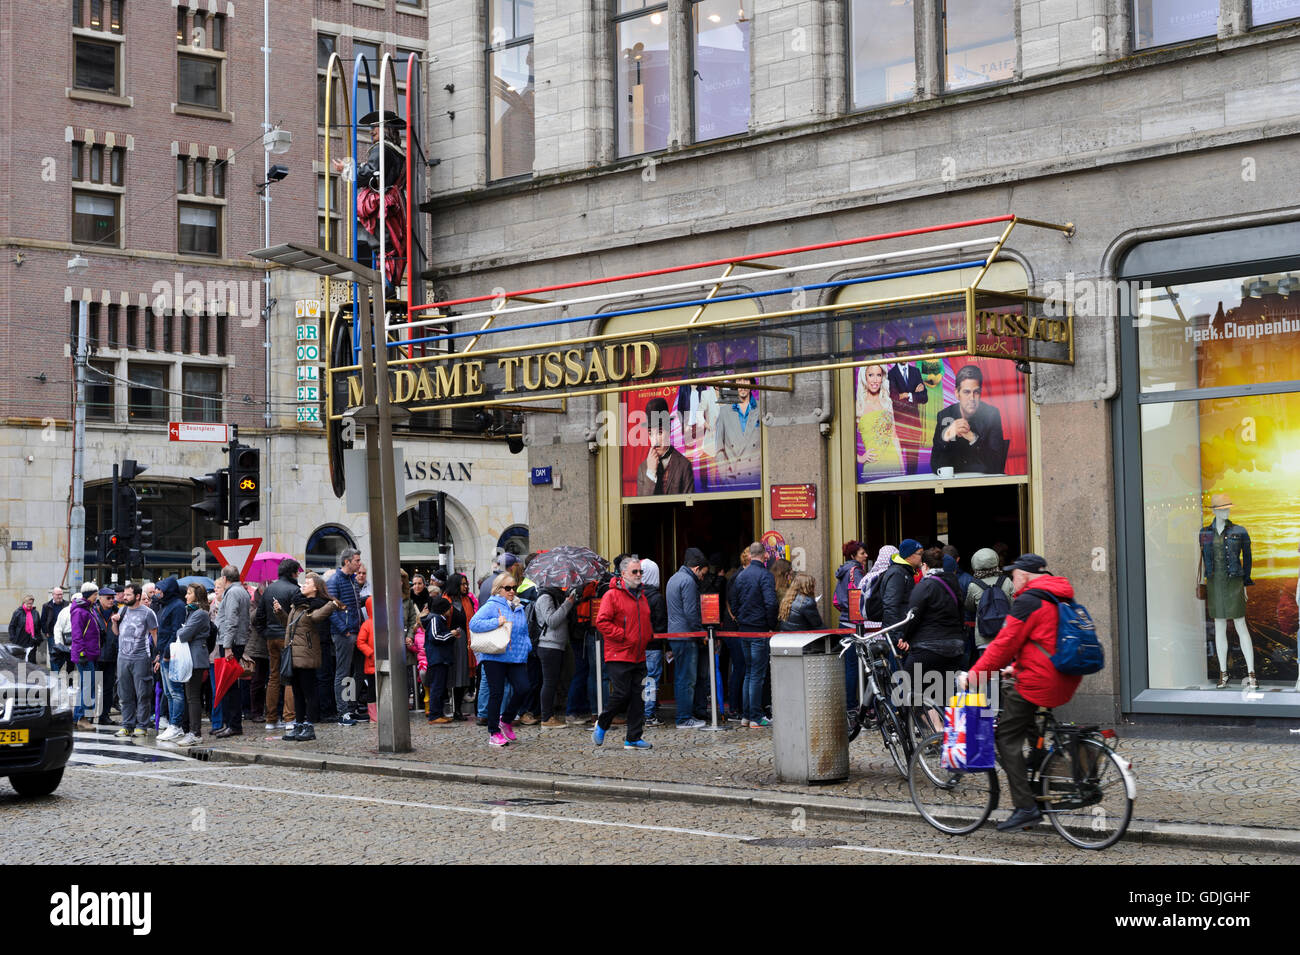 People queuing outside the famous Madame Tussaud in Amsterdam, Holland, Netherdalnds. - Stock Image